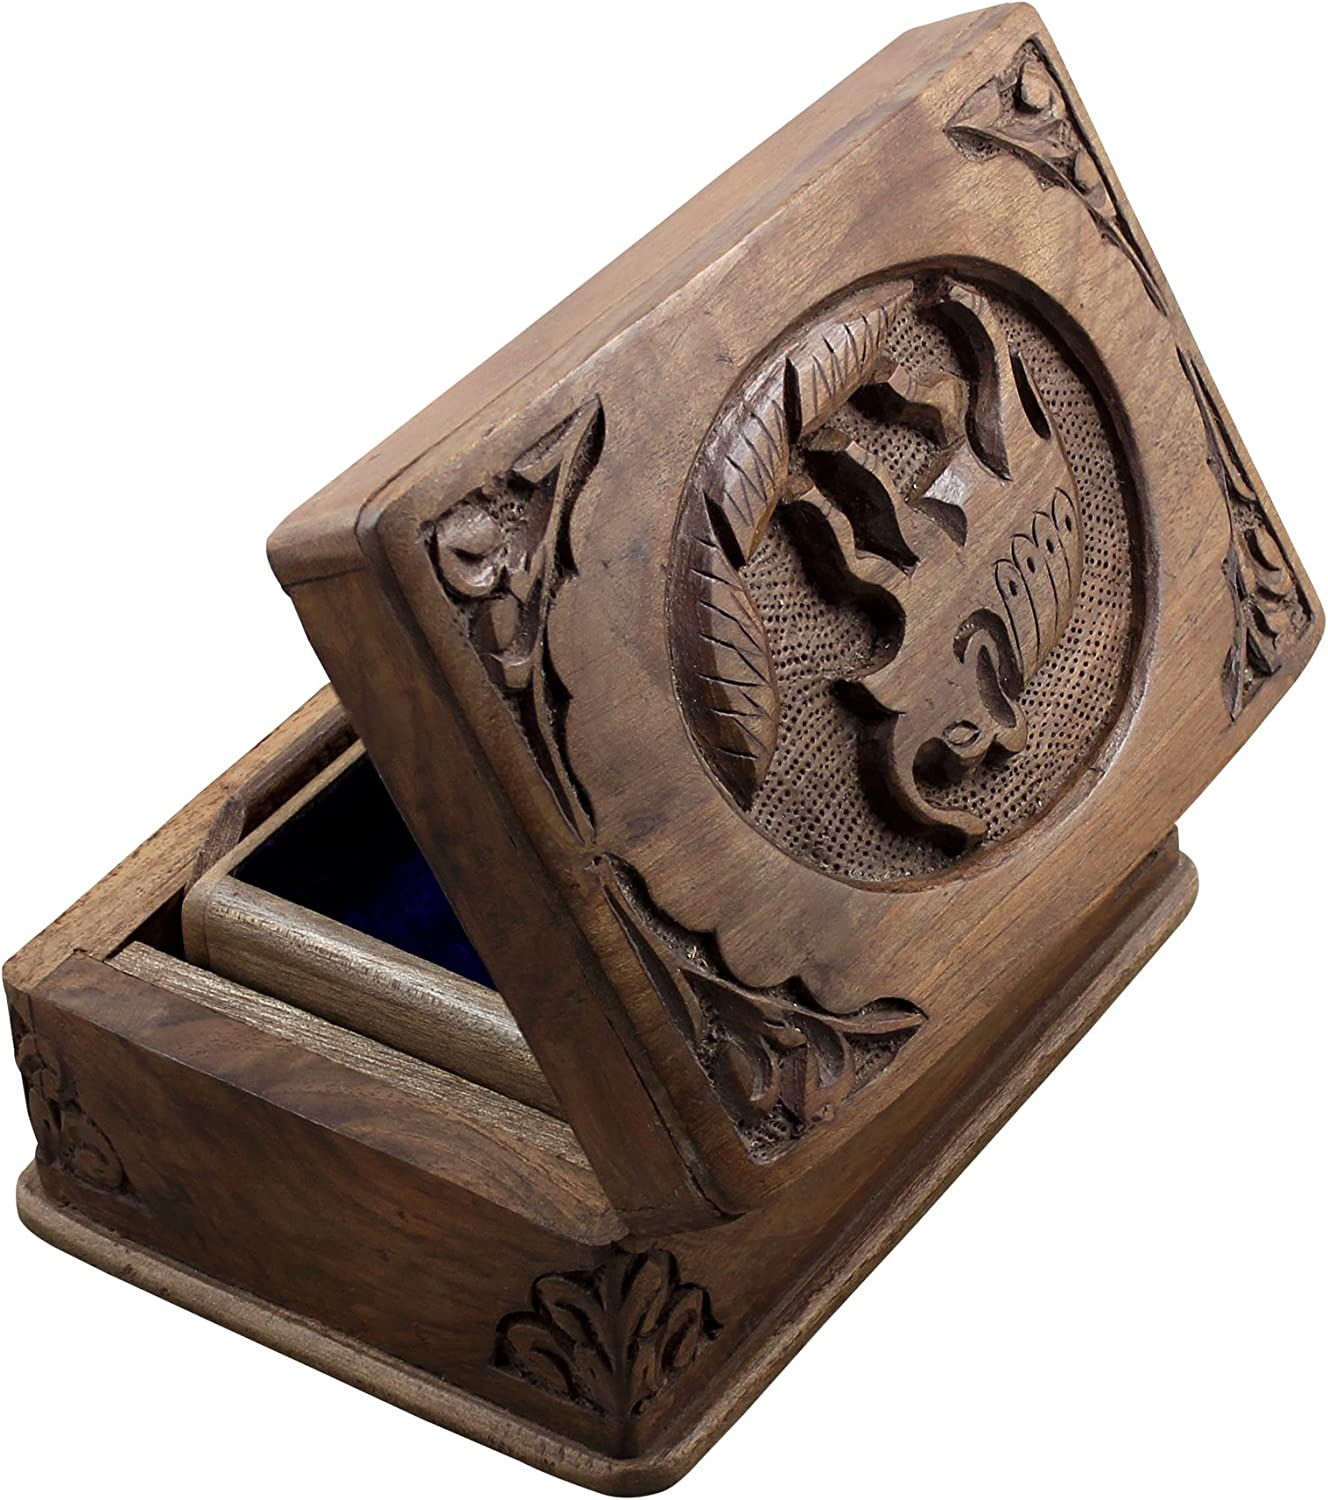 RoyaltyRoute Decorative Indian Wooden Jewelry Box for Holding Ring, Earring & Small Jewelery, 6 Inches